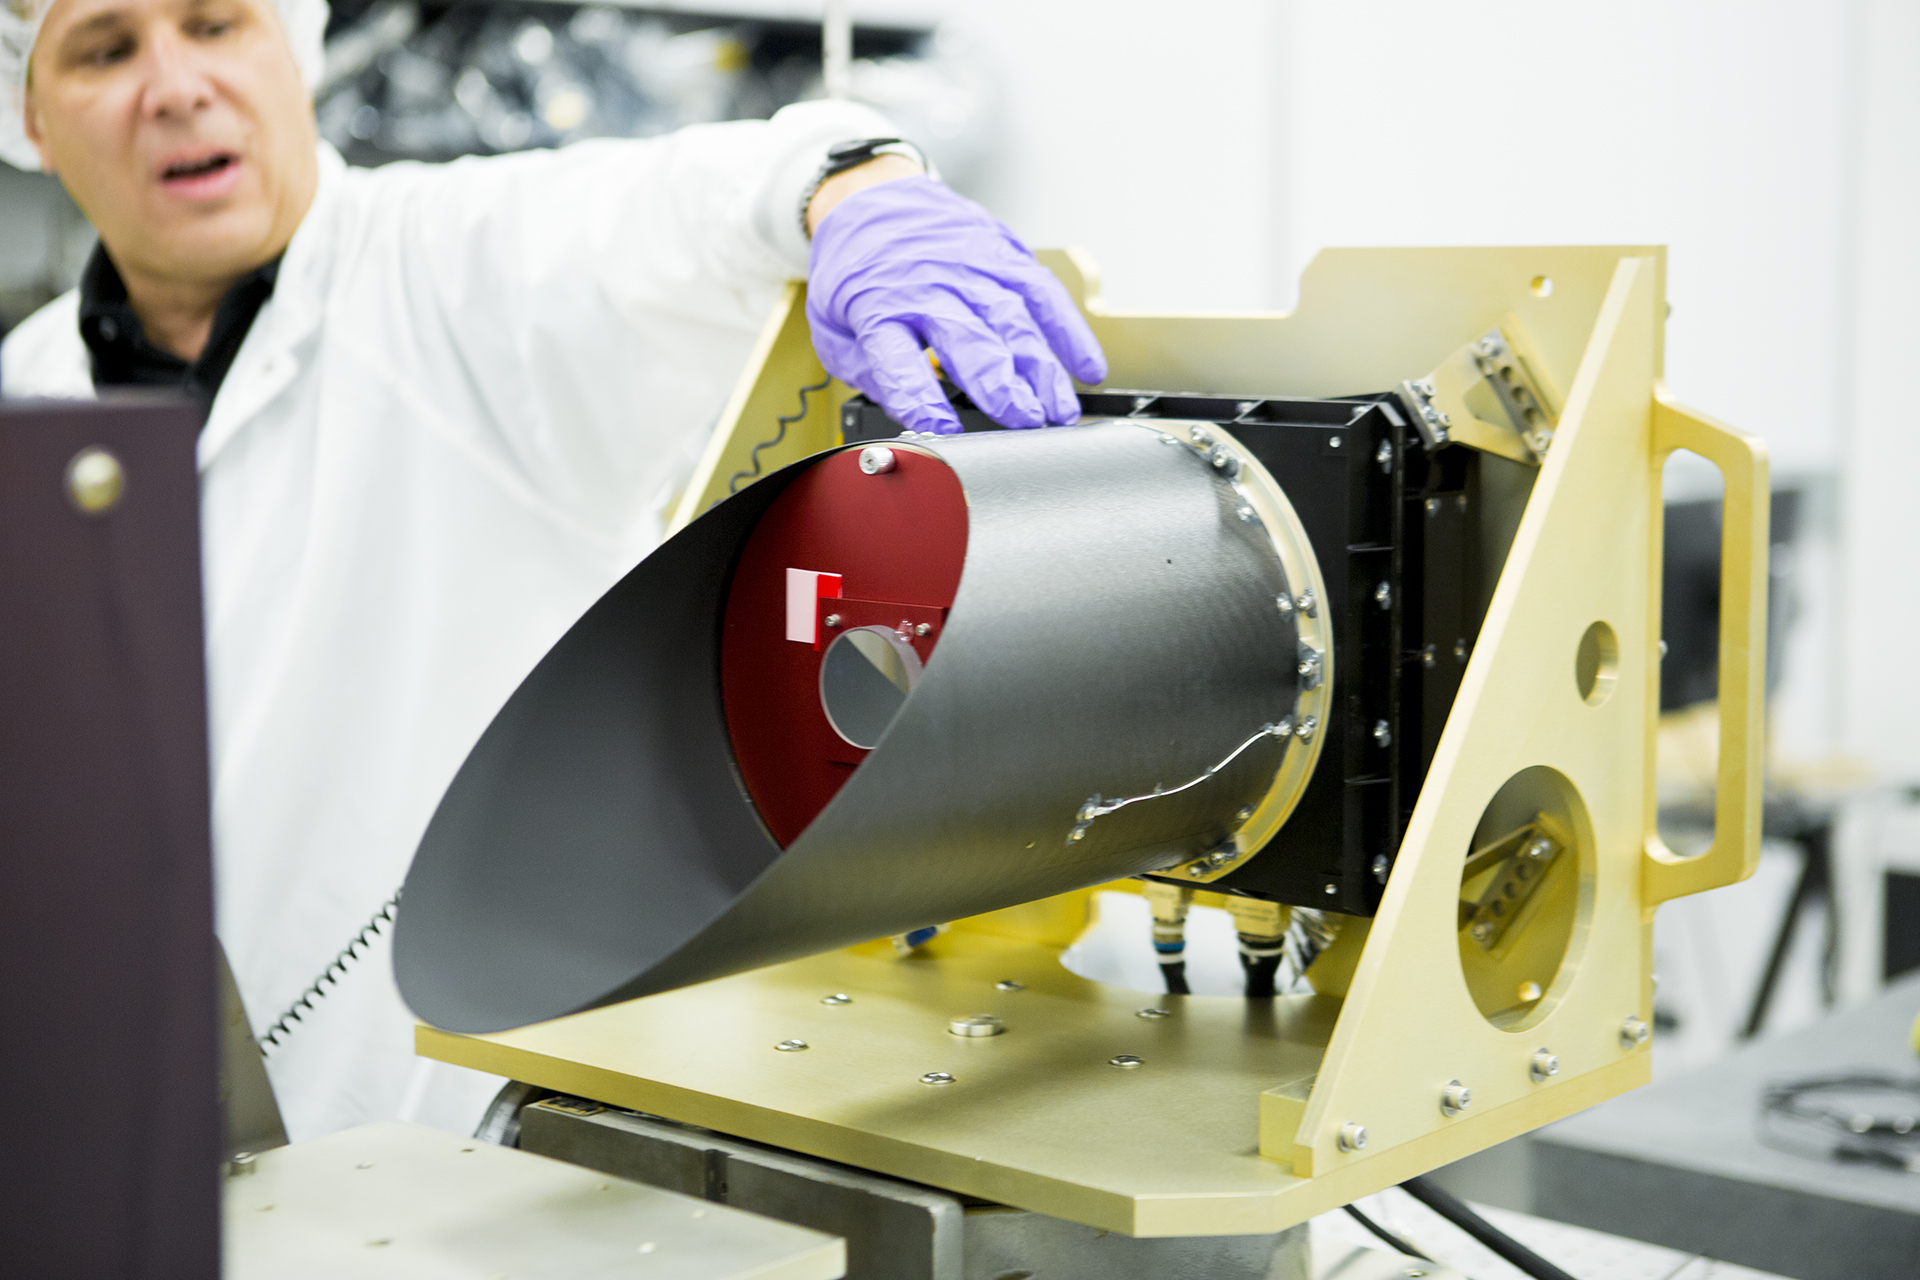 Greg Mehall, lead project engineer, describes the final testing procedures of the OSIRIS-REx Thermal Emission Spectrometer (OTES), on June 22. OTES is the first space instrument built entirely on ASU's Tempe campus. Credit: University of Arizona/Symeon Platts